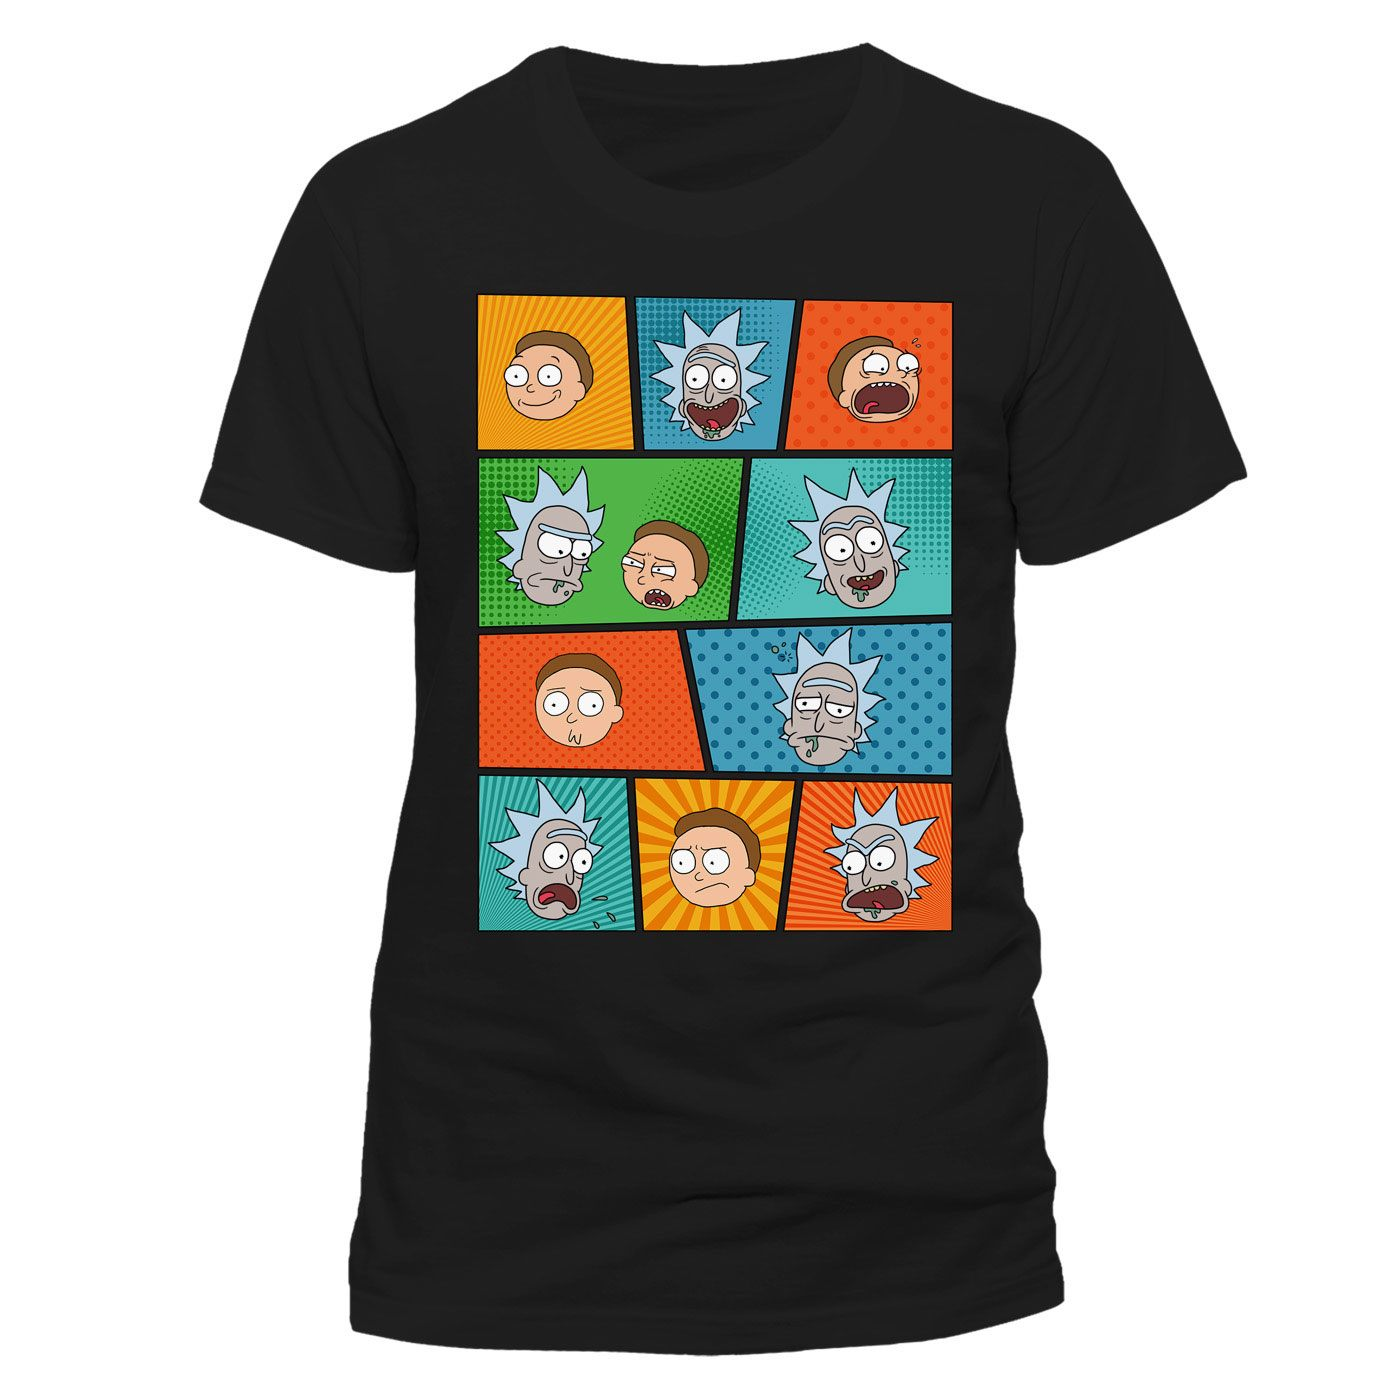 Rick and Morty T-Shirt Pop Art Faces Size L